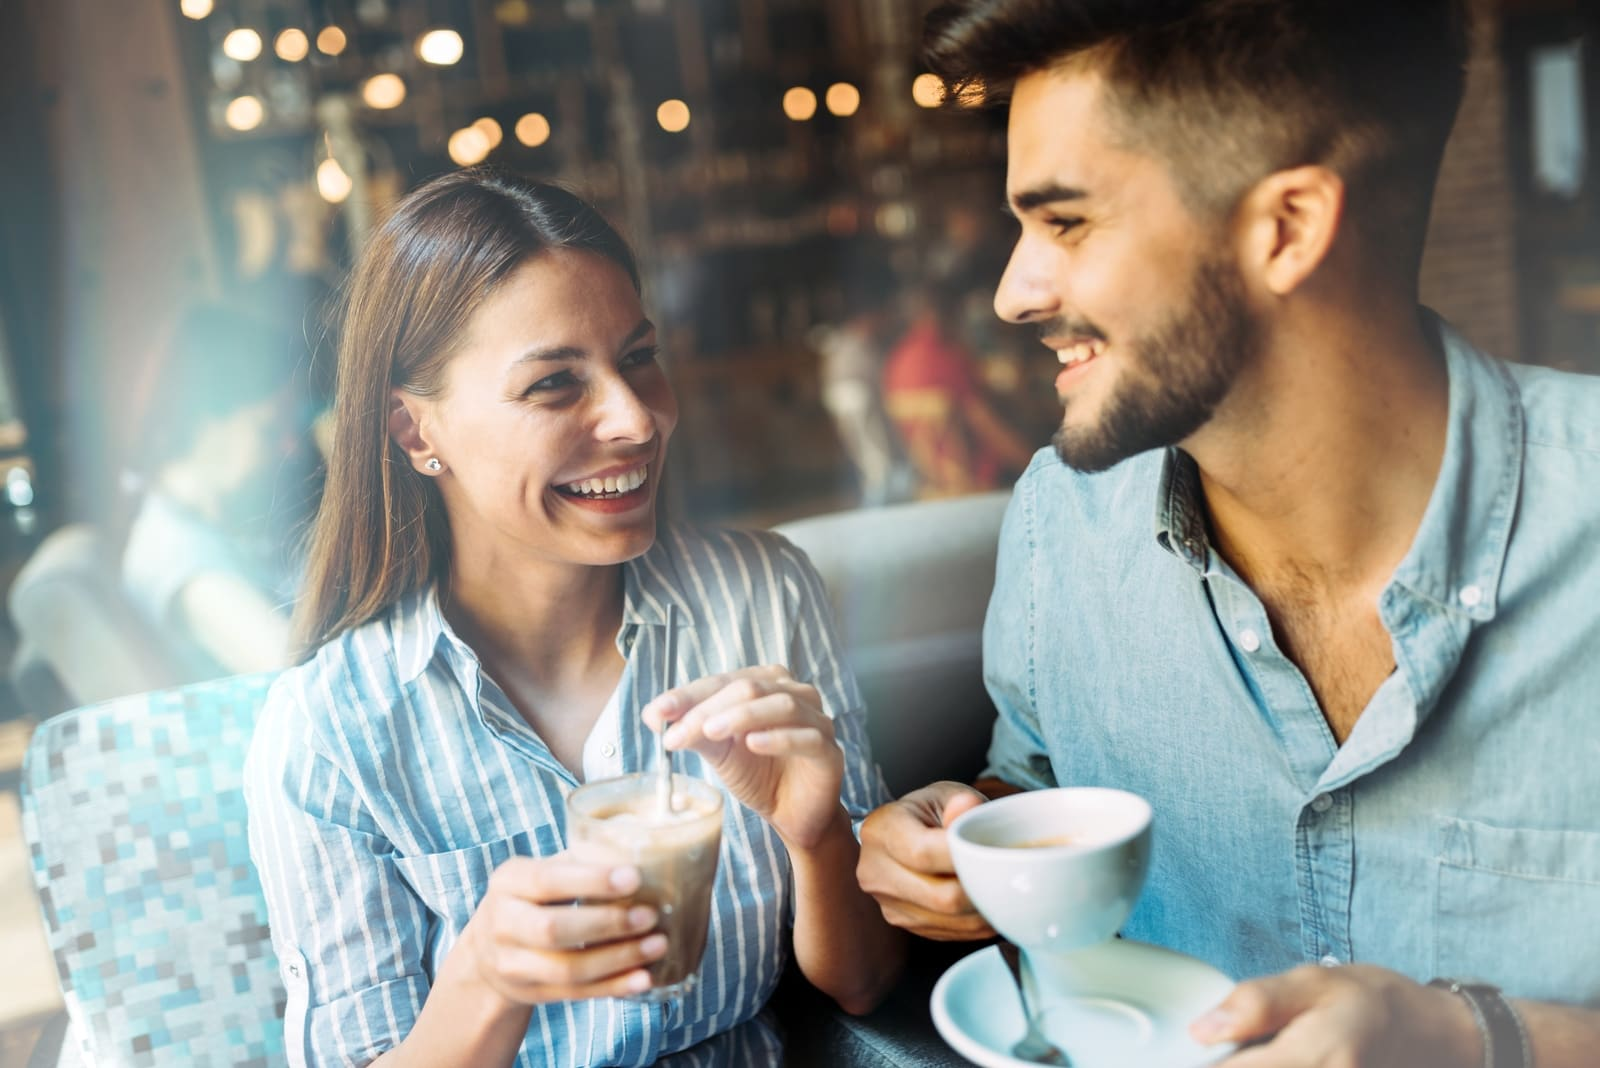 man and woman having coffee in cafe